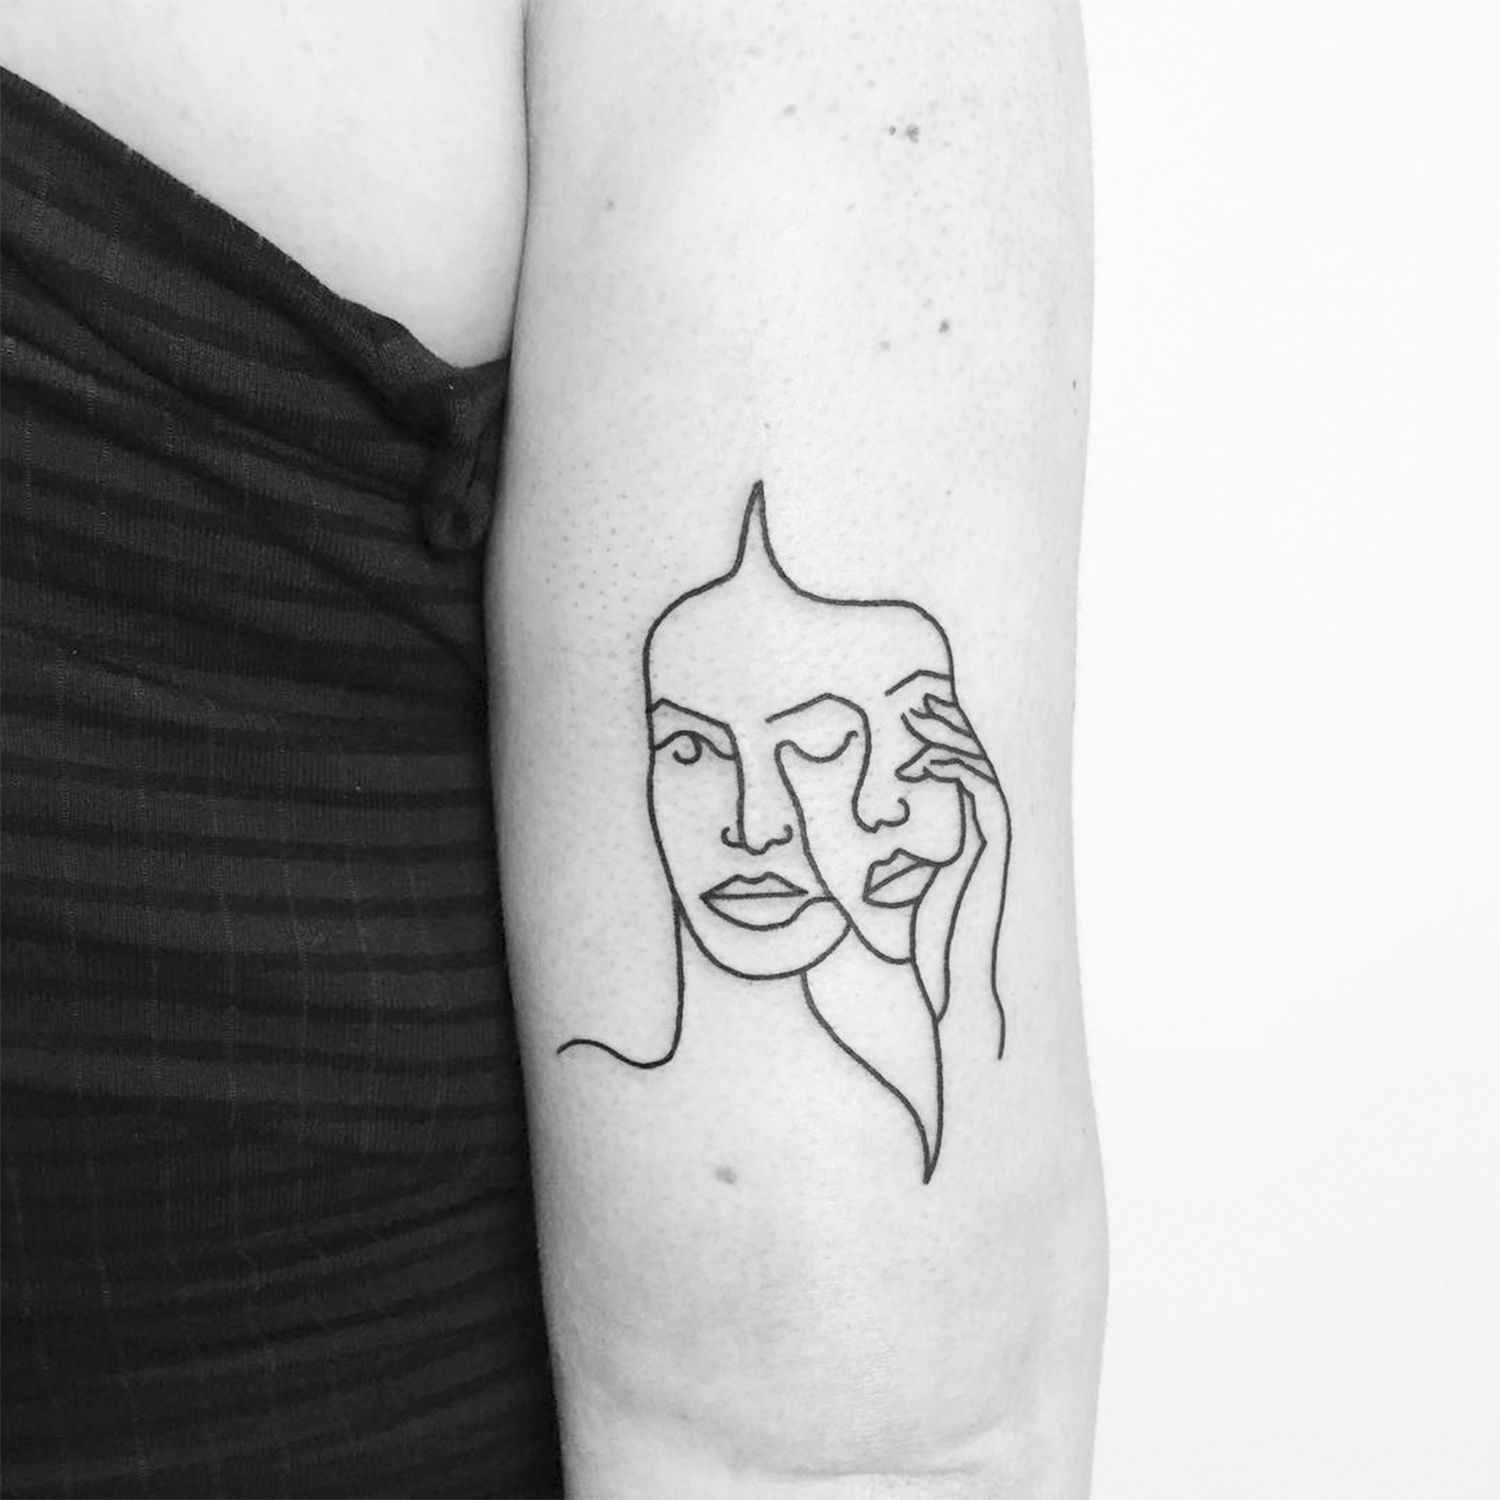 c86228b4cfe8c Strange and Erotic Minimalist Tattoos by Curt Montgomery | Tattoos ...